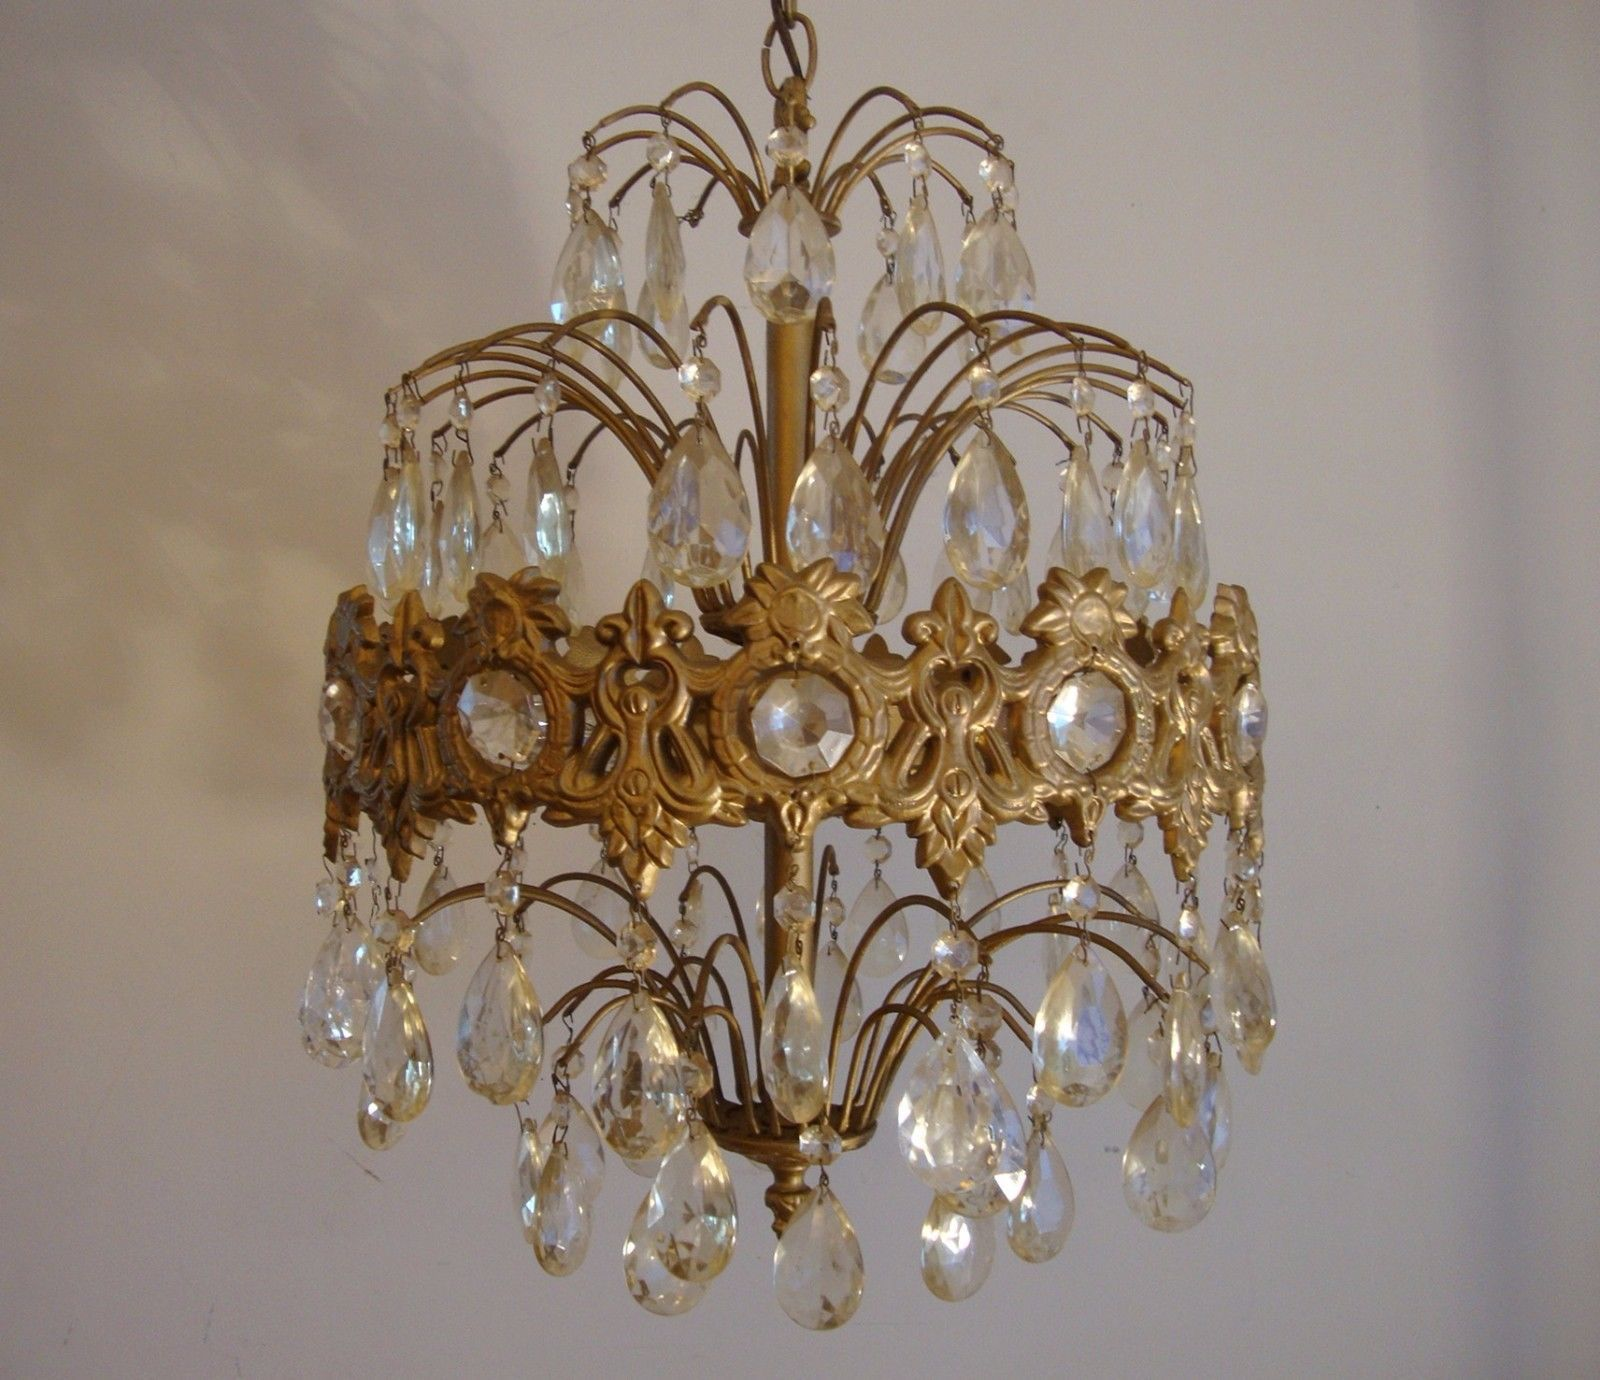 chandelier designs prism t j and for kalmar triangular rectangular glass lead crystal by